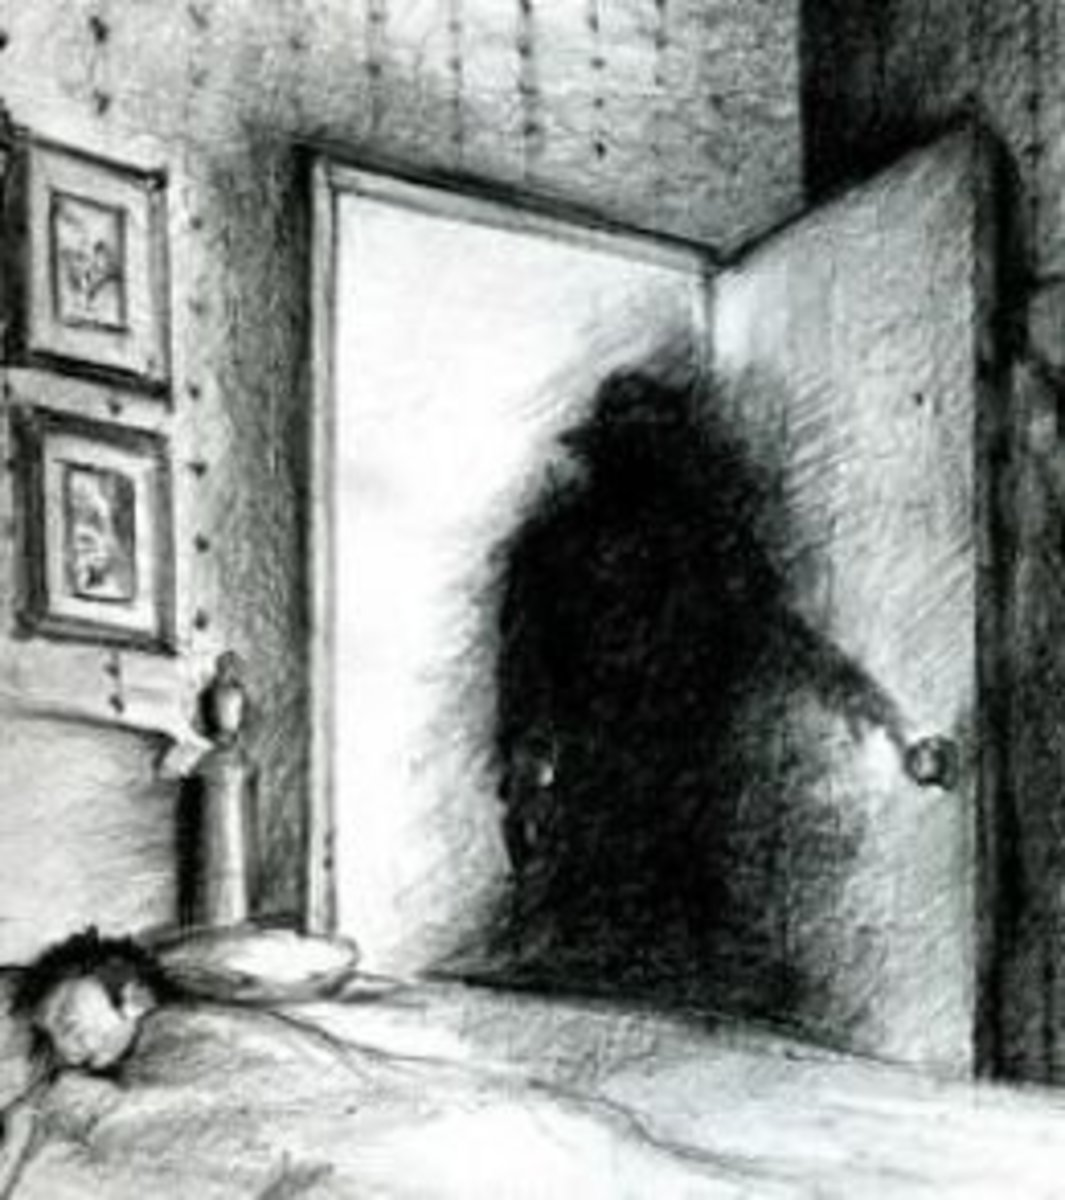 Exactly What Are Shadow People? Have You Ever Saw A Shadow Person?